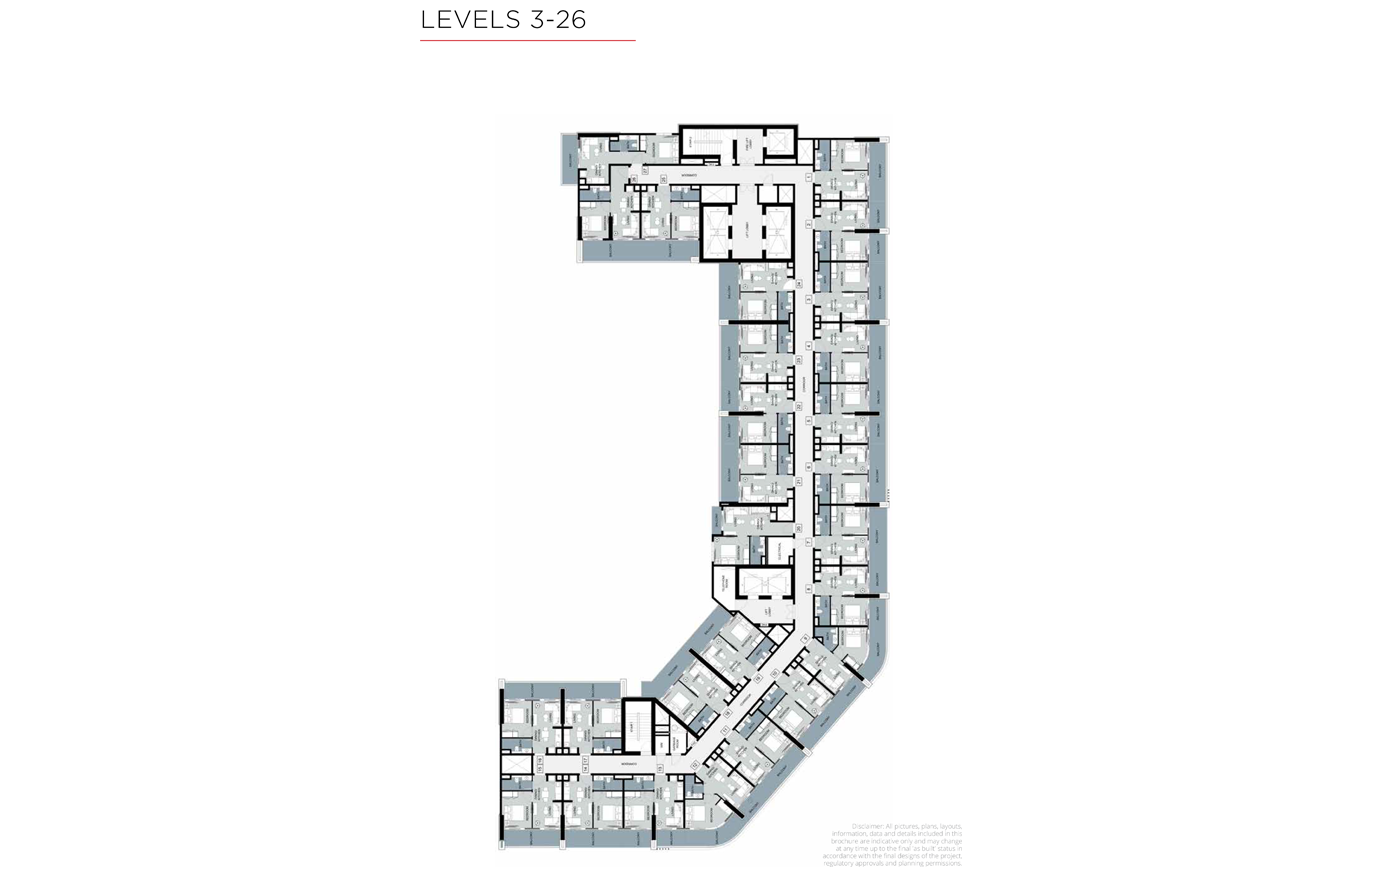 Typical Floor, Level 3-26